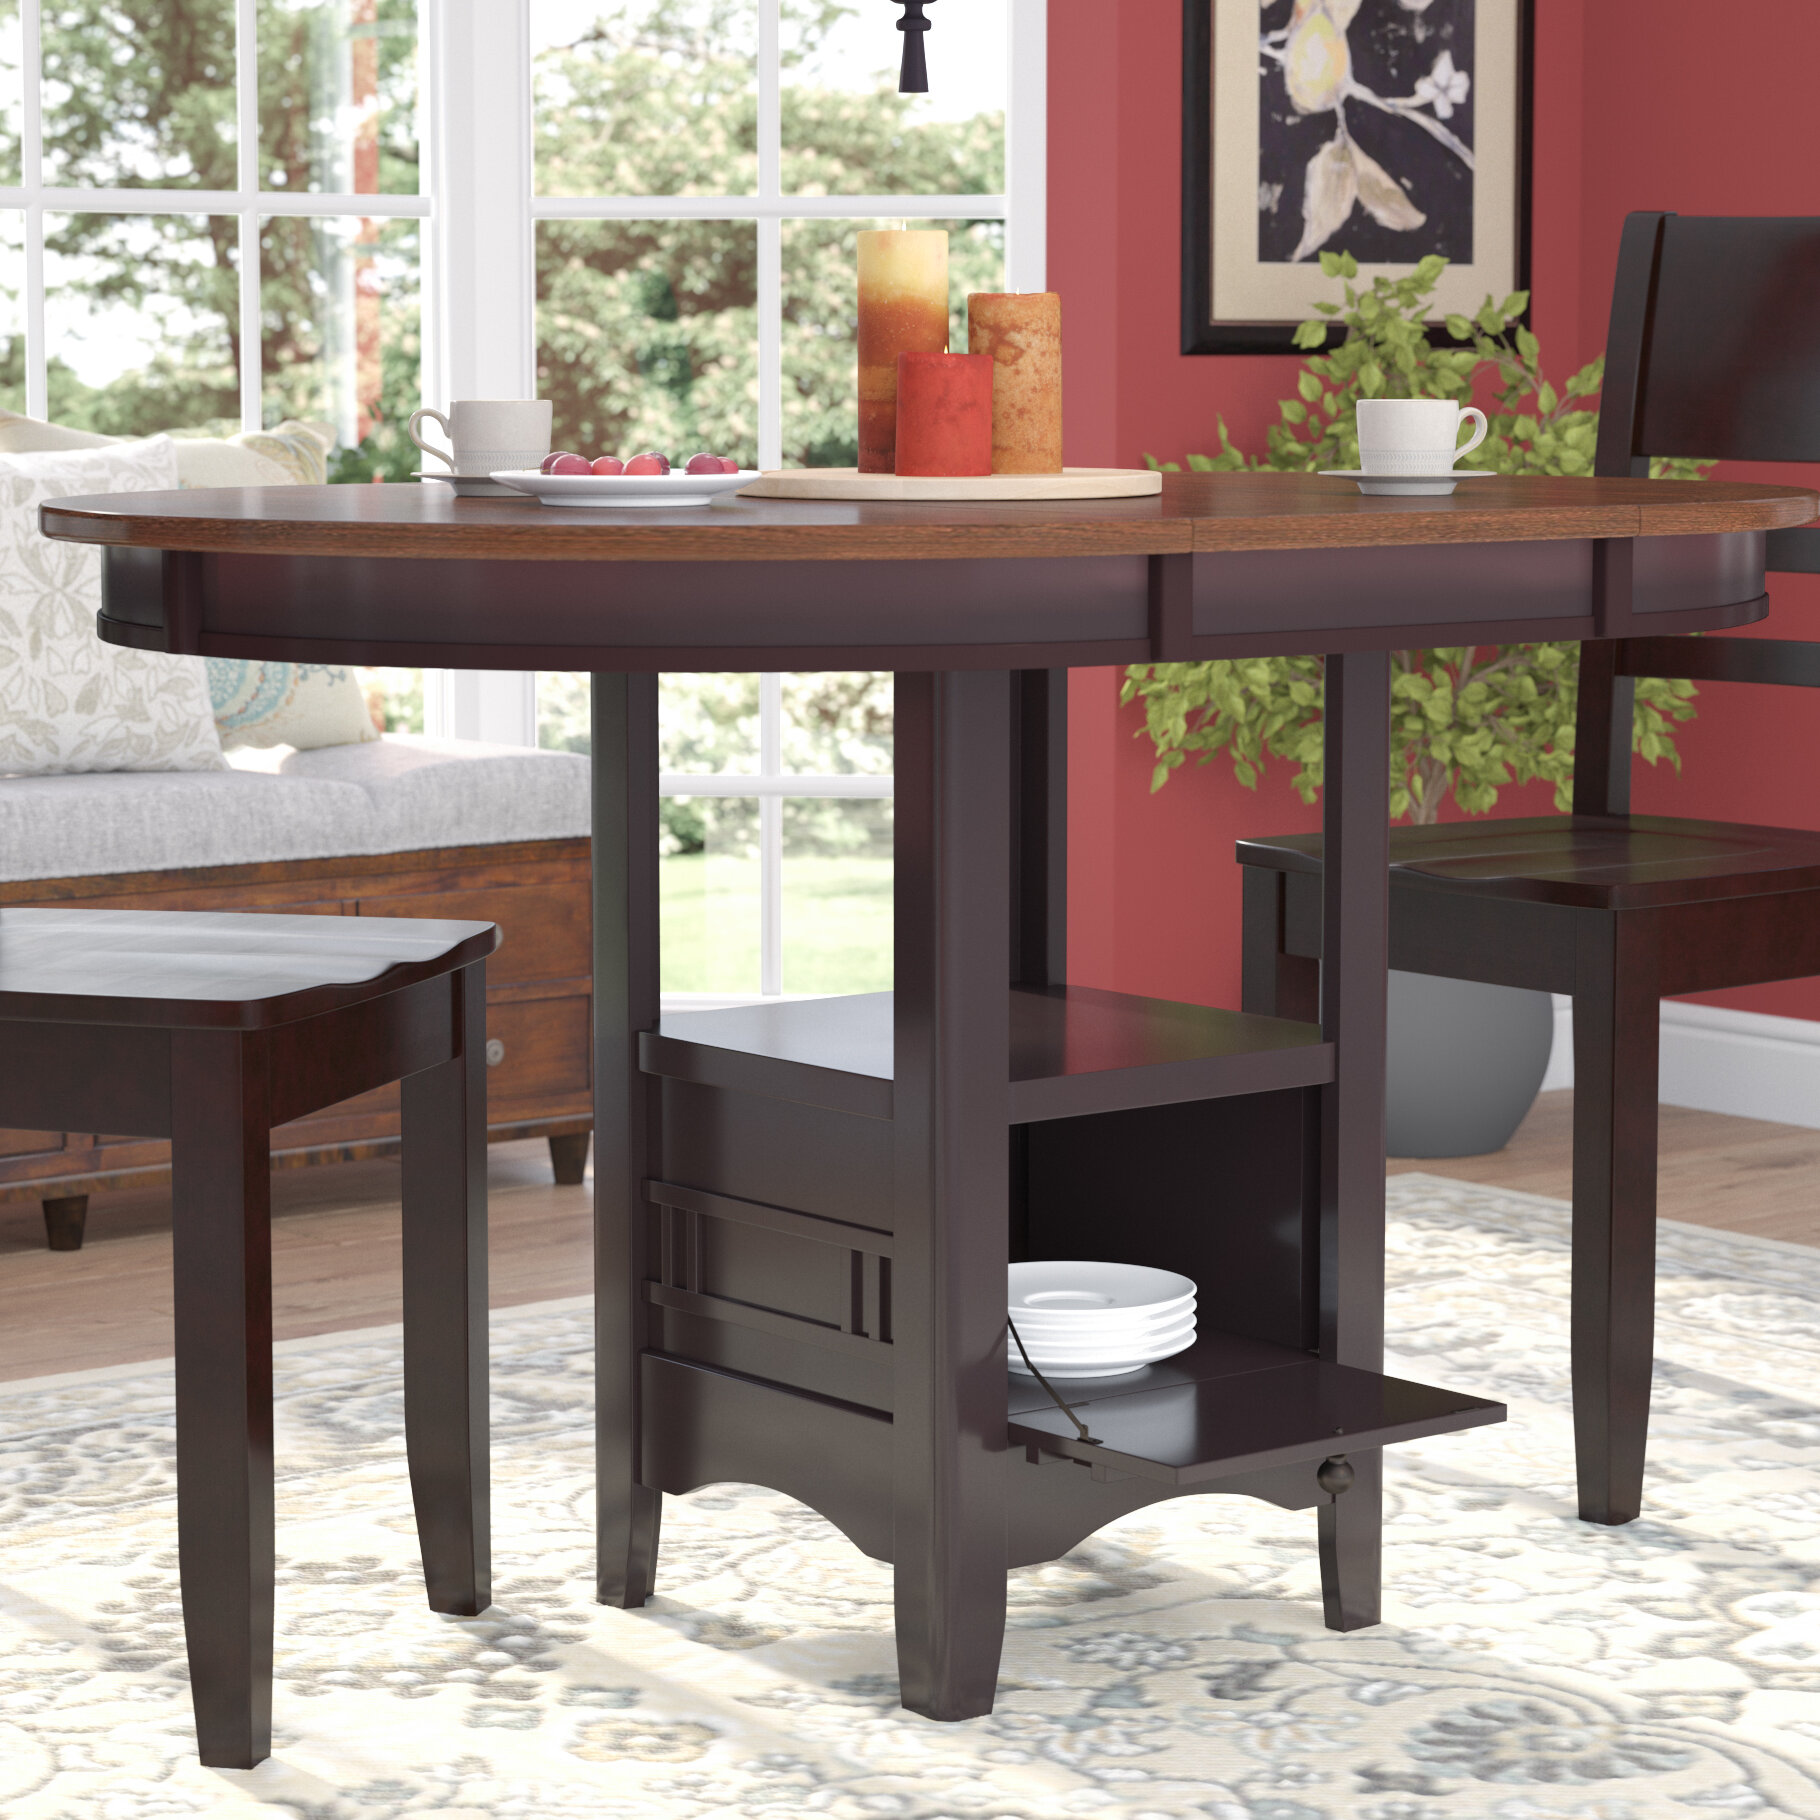 Superb Drop Leaf Storage Kitchen Dining Tables Youll Love In Interior Design Ideas Philsoteloinfo